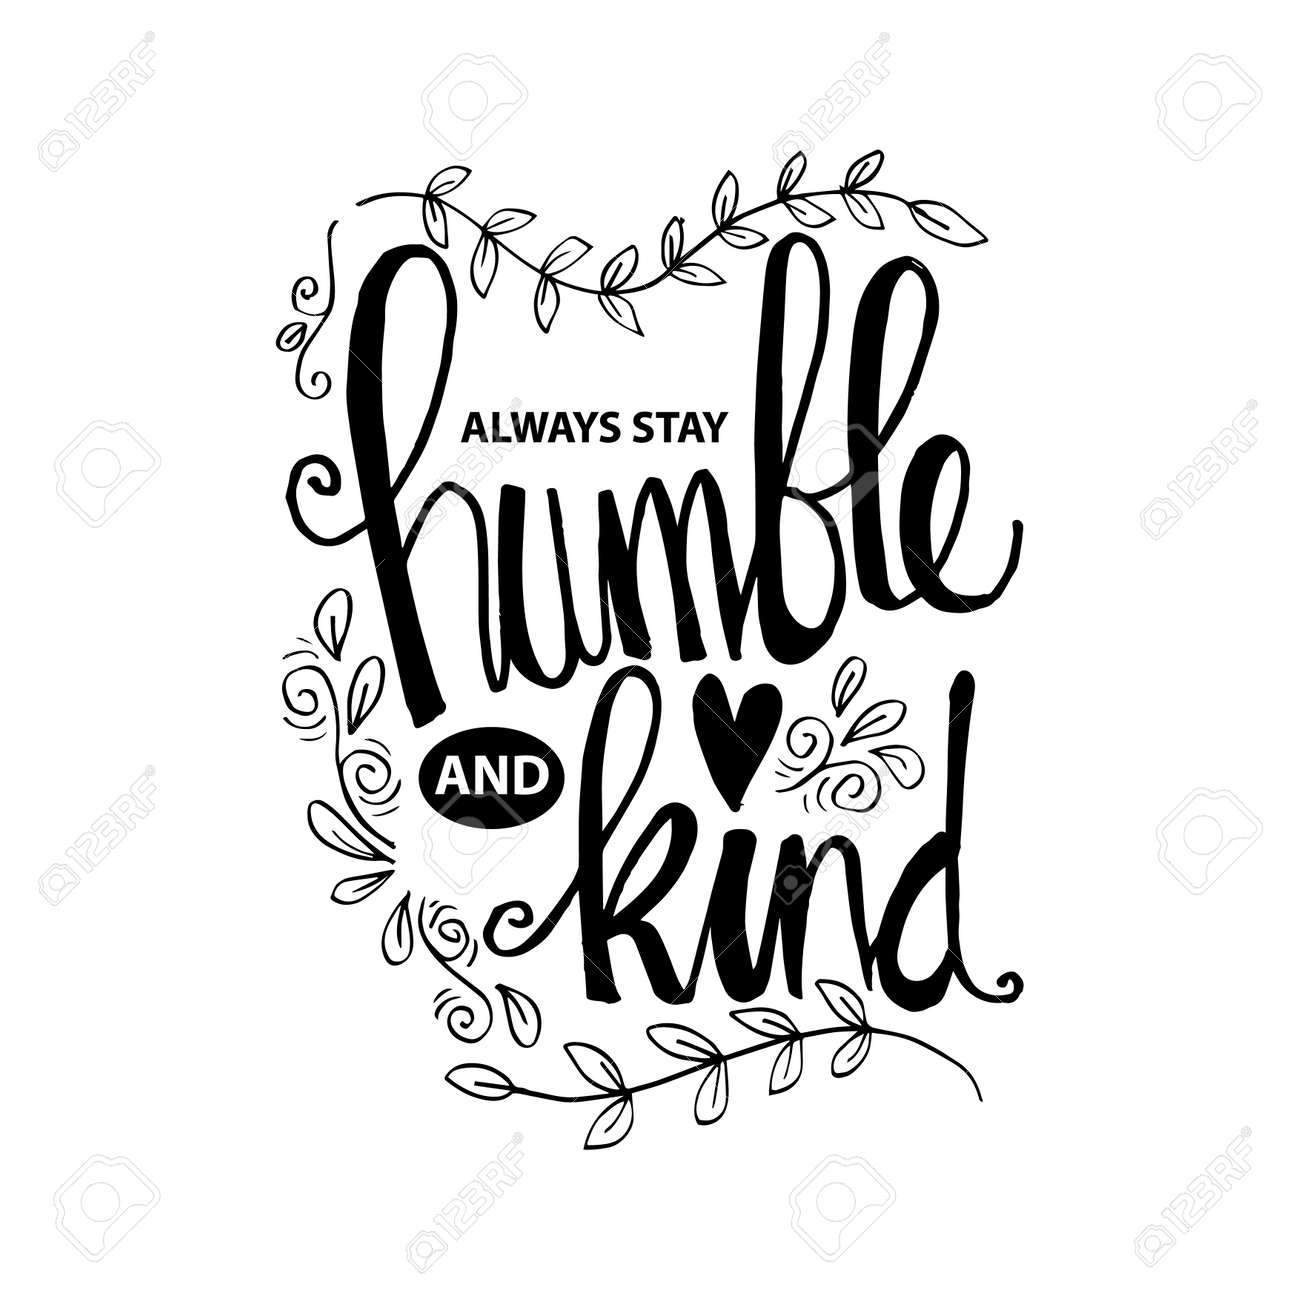 Always Stay Humble And Kind Lettering Inspirational Quote Royalty